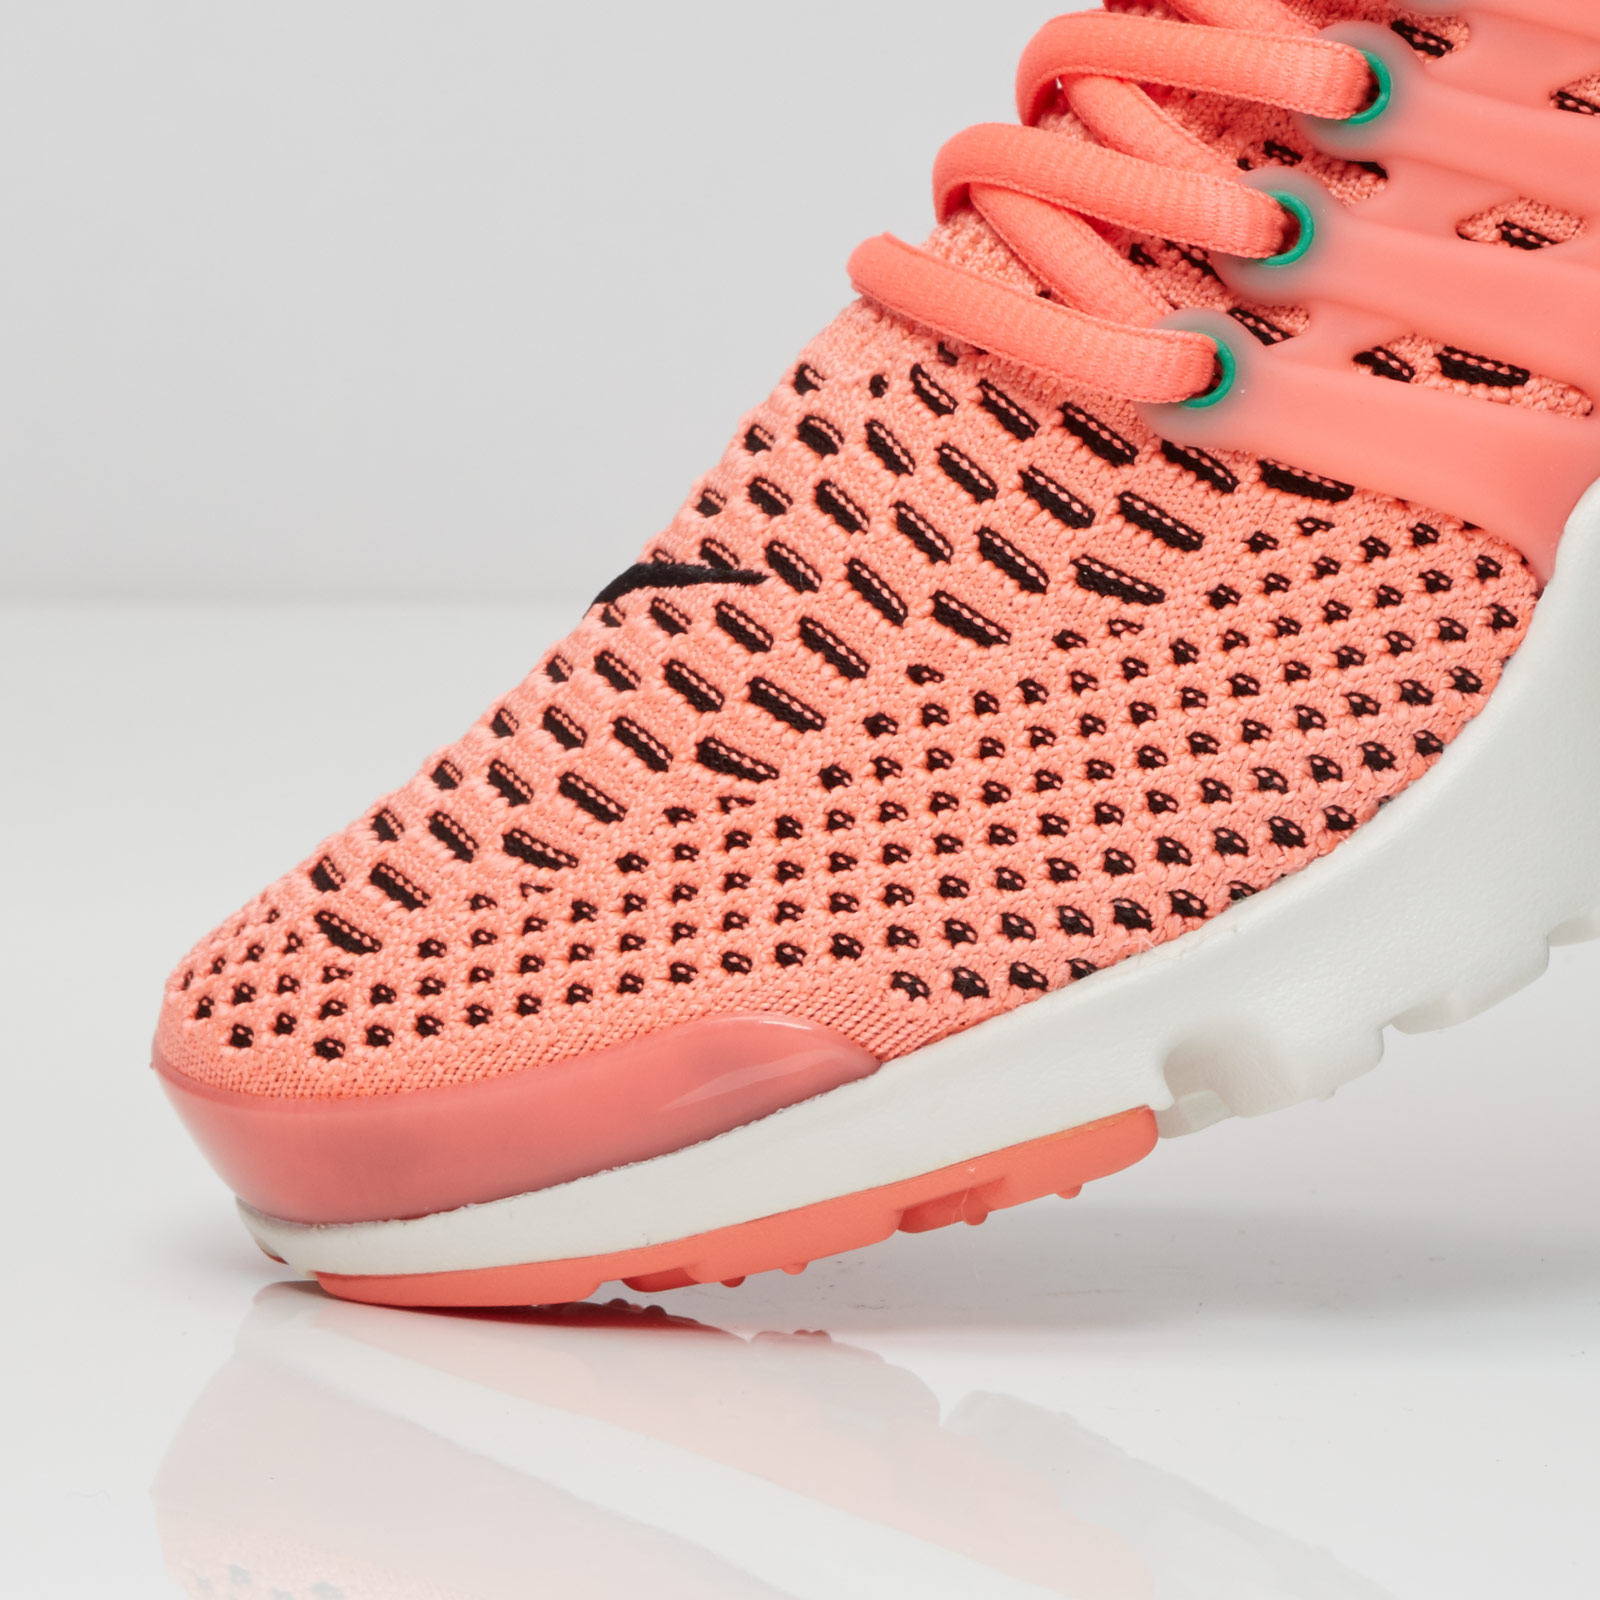 separation shoes 7e856 ab222 ... Nike Wmns Air Presto Flyknit Ultra ...